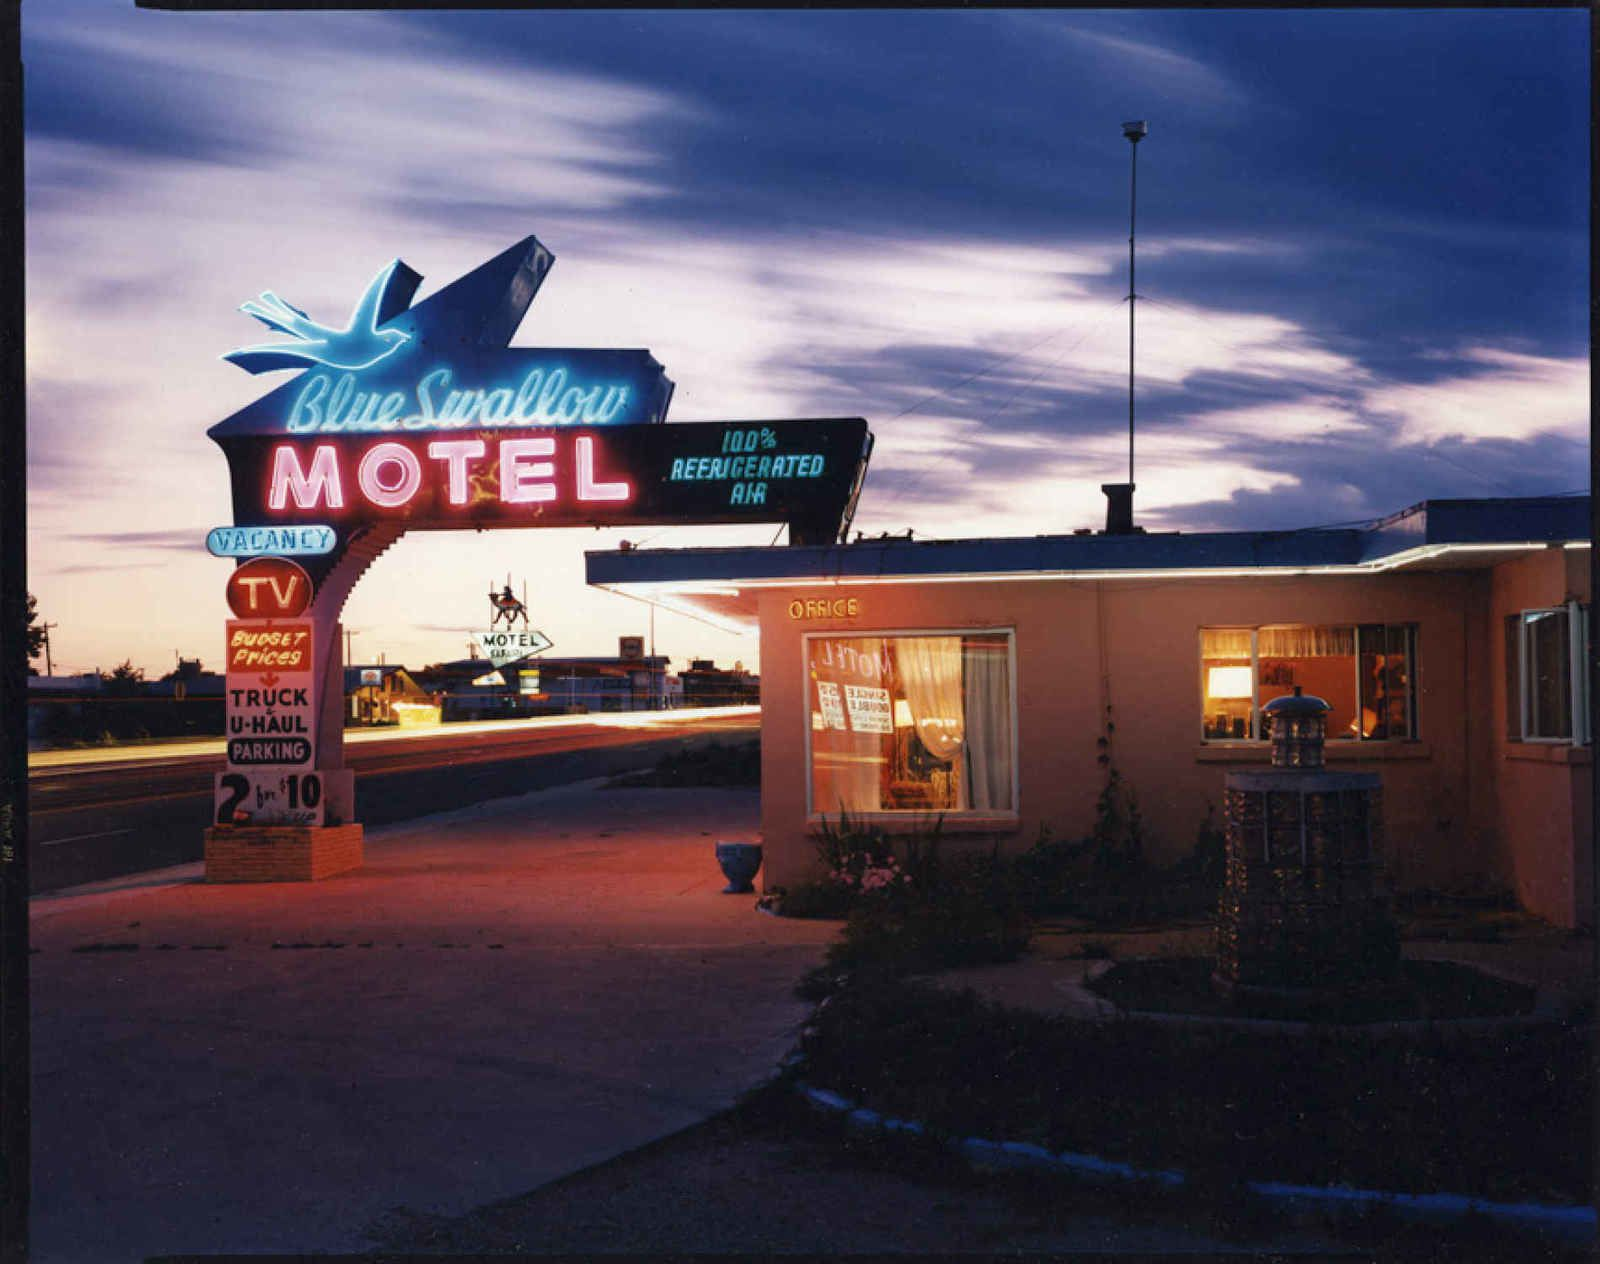 """Blue Swallow Motel, Rt.66, Tucumcari"", 1990 de Steve Fitch"